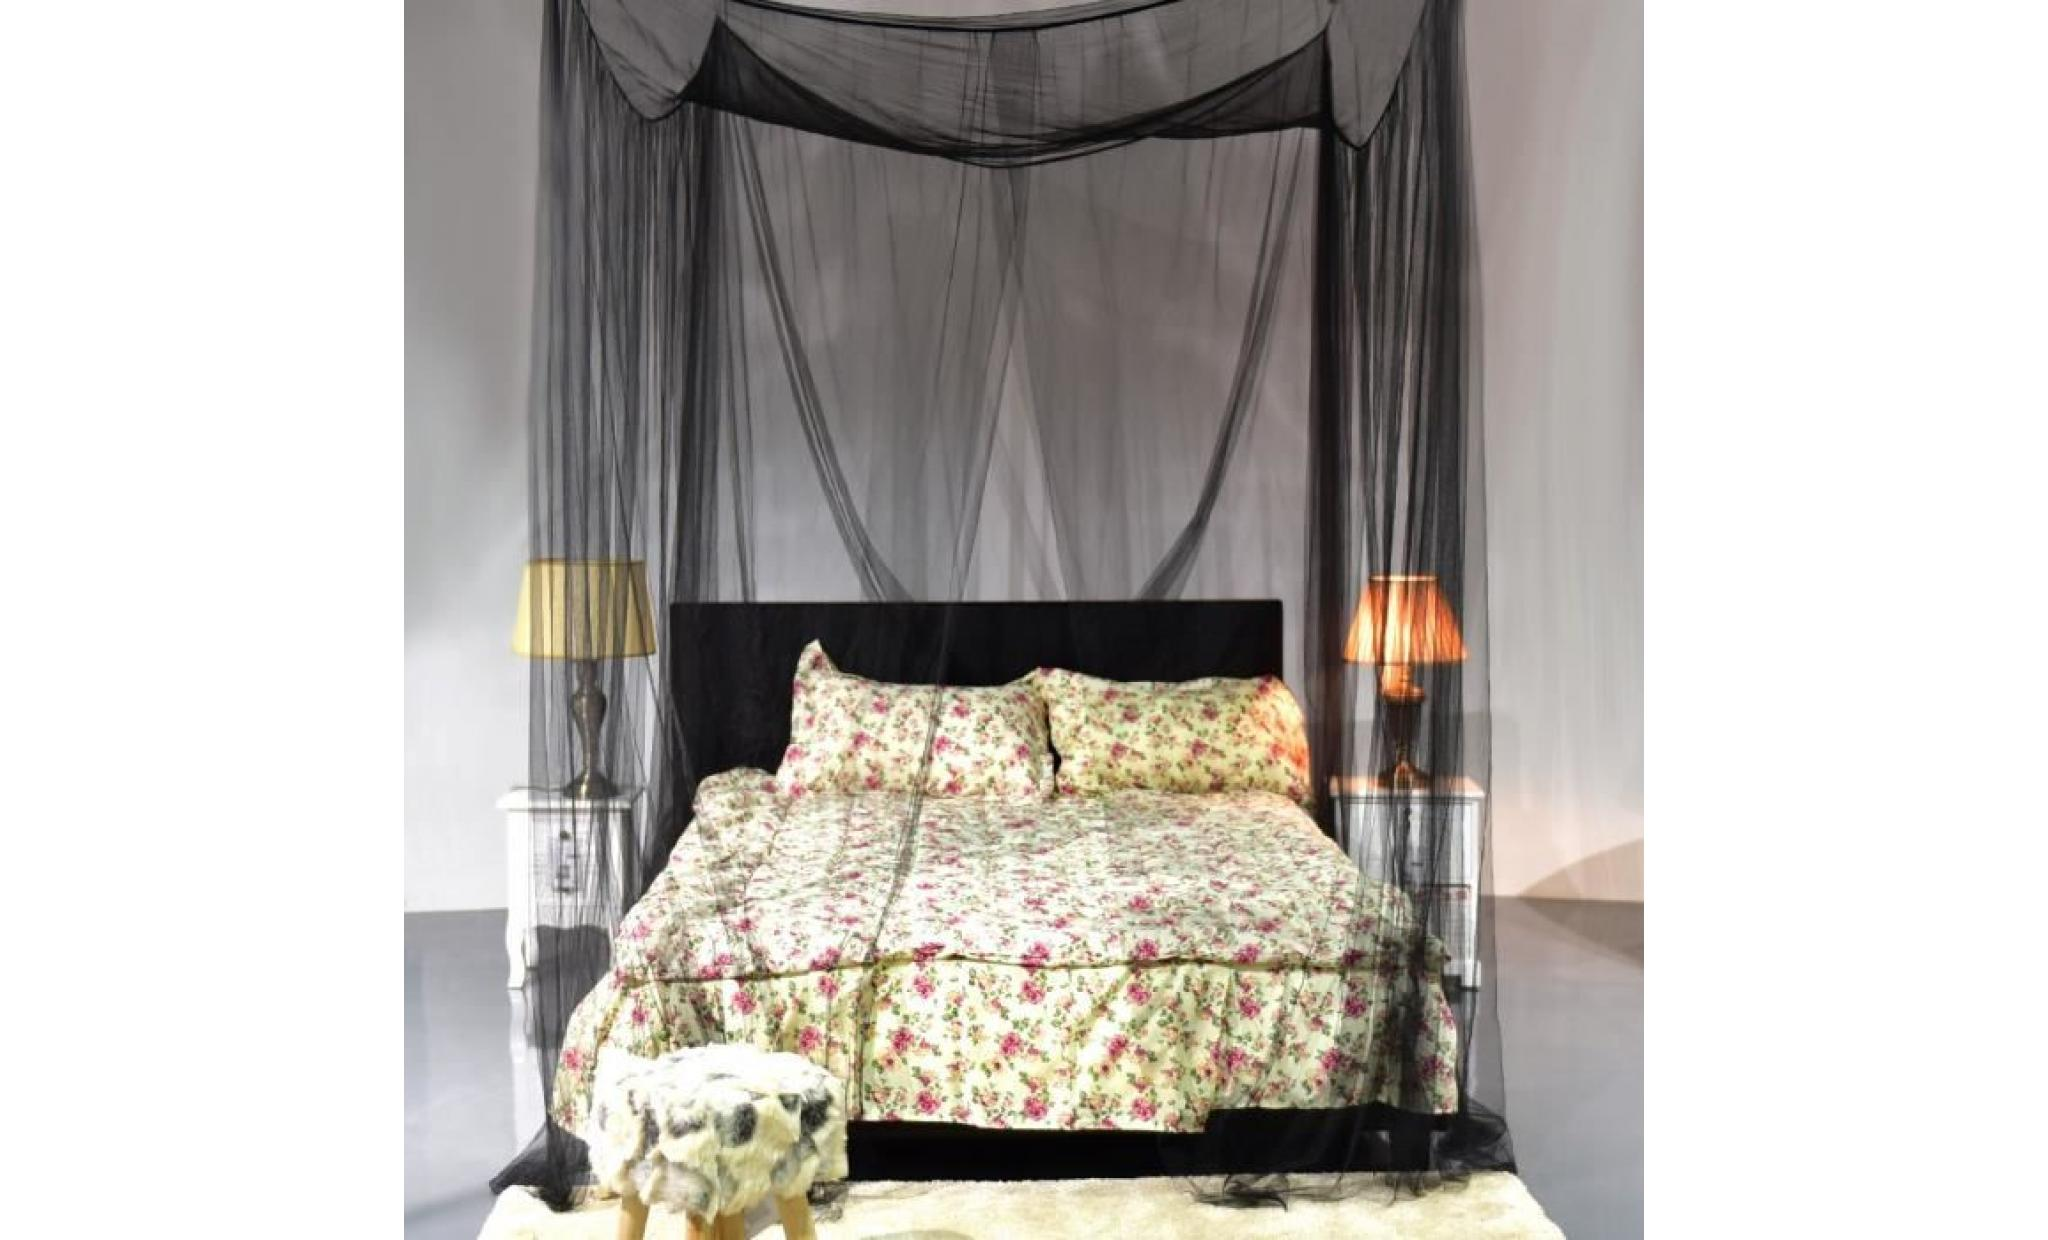 ciel de lit moustiquaire 4coins protection complet reine prince insecte achat vente chambre. Black Bedroom Furniture Sets. Home Design Ideas